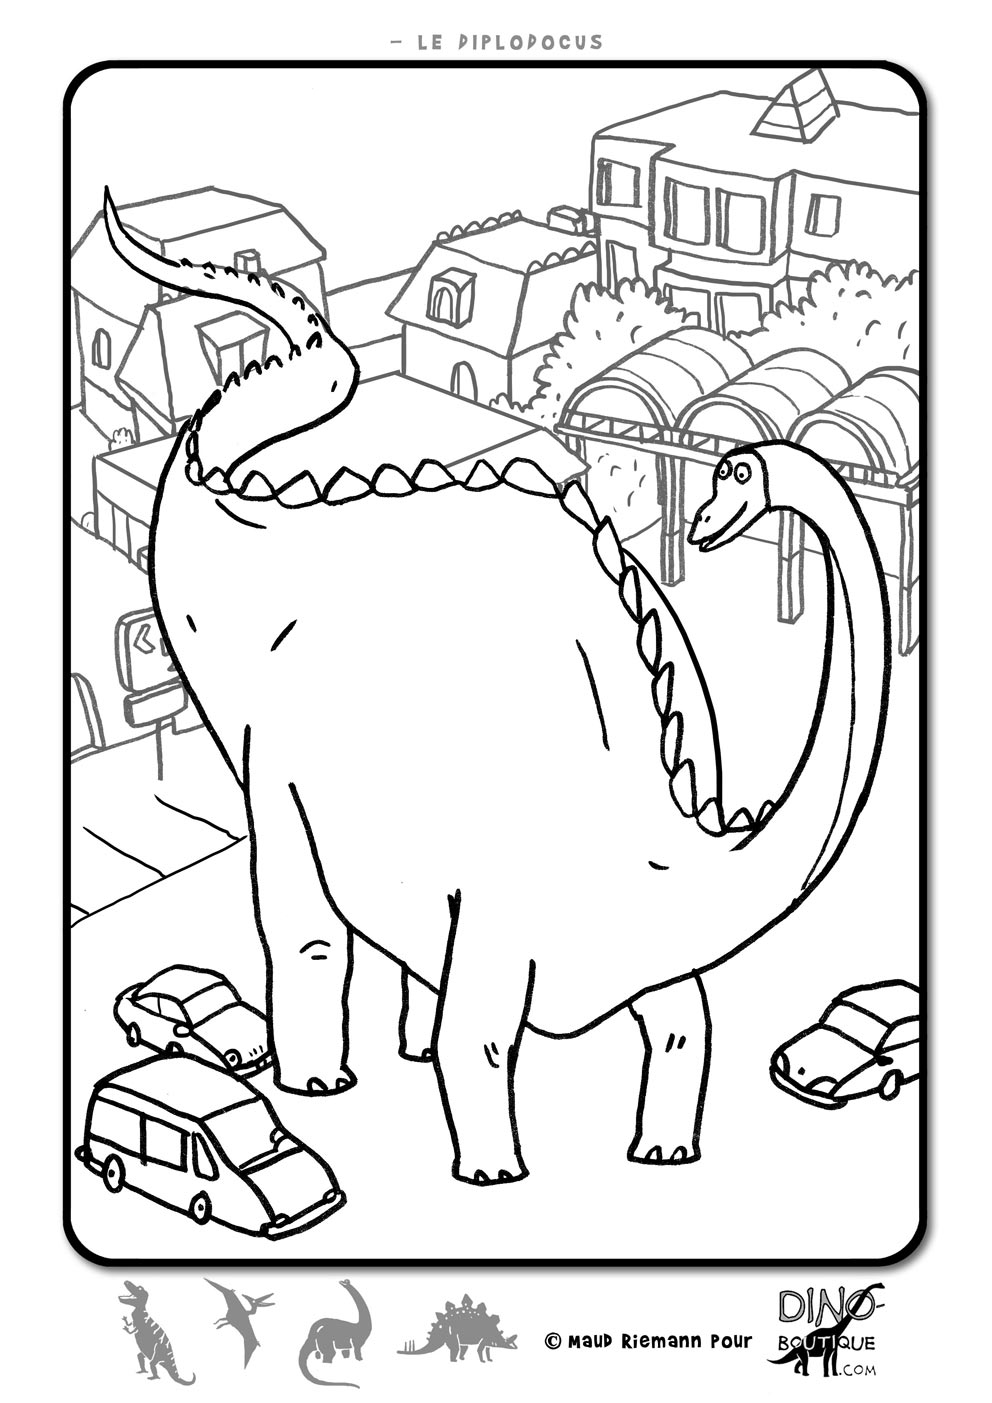 Printable Dinosaurs coloring page to print and color : giant Diplodocus